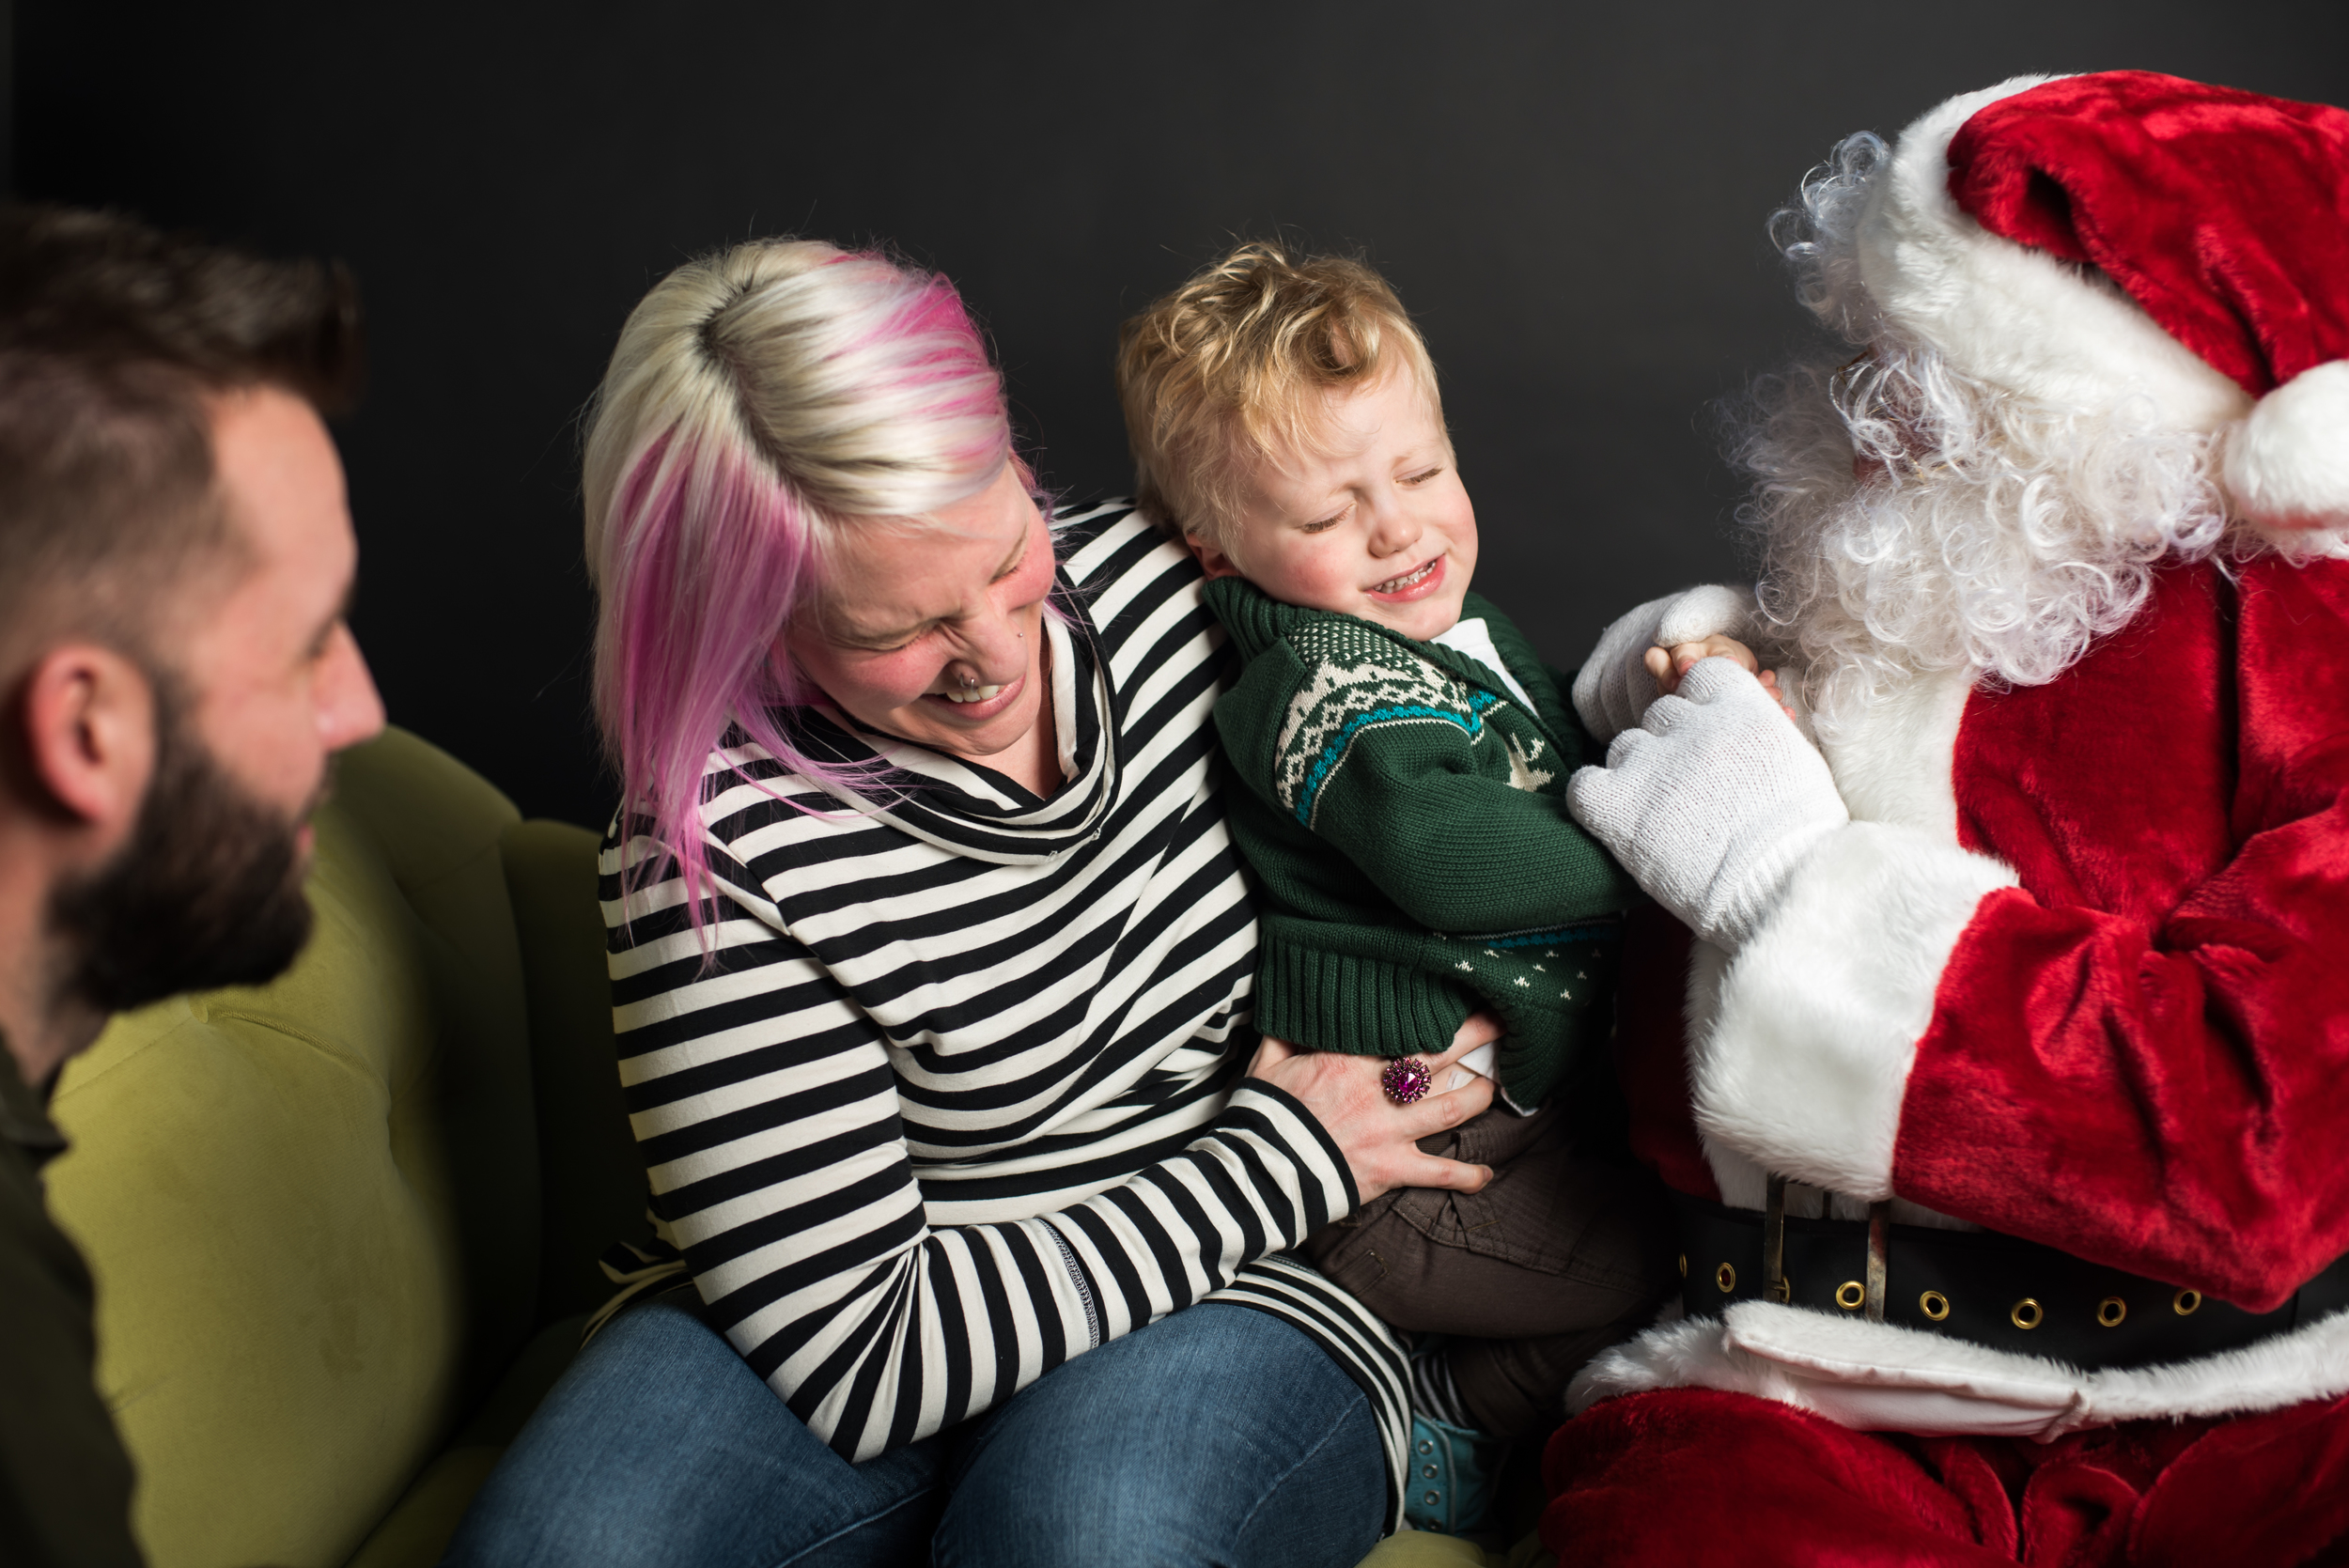 and then the toddler meets Santa and hates it.